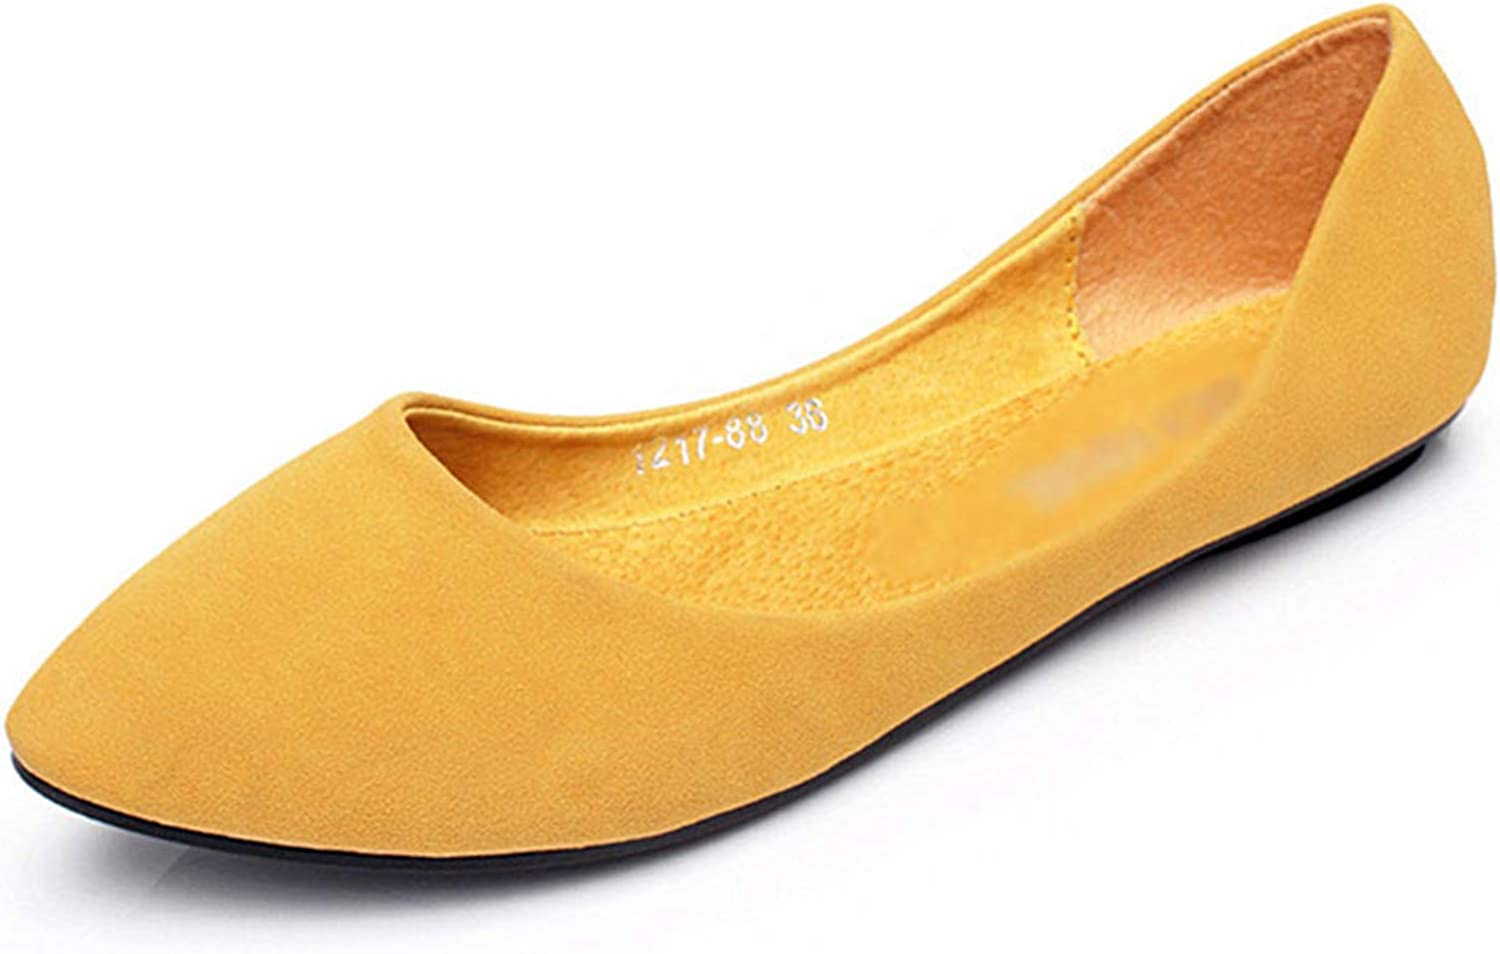 Kyle Walsh Pa Women Flats shoes Slip-on Pointed Toe Female Casual Soft Walking Driving Footwear